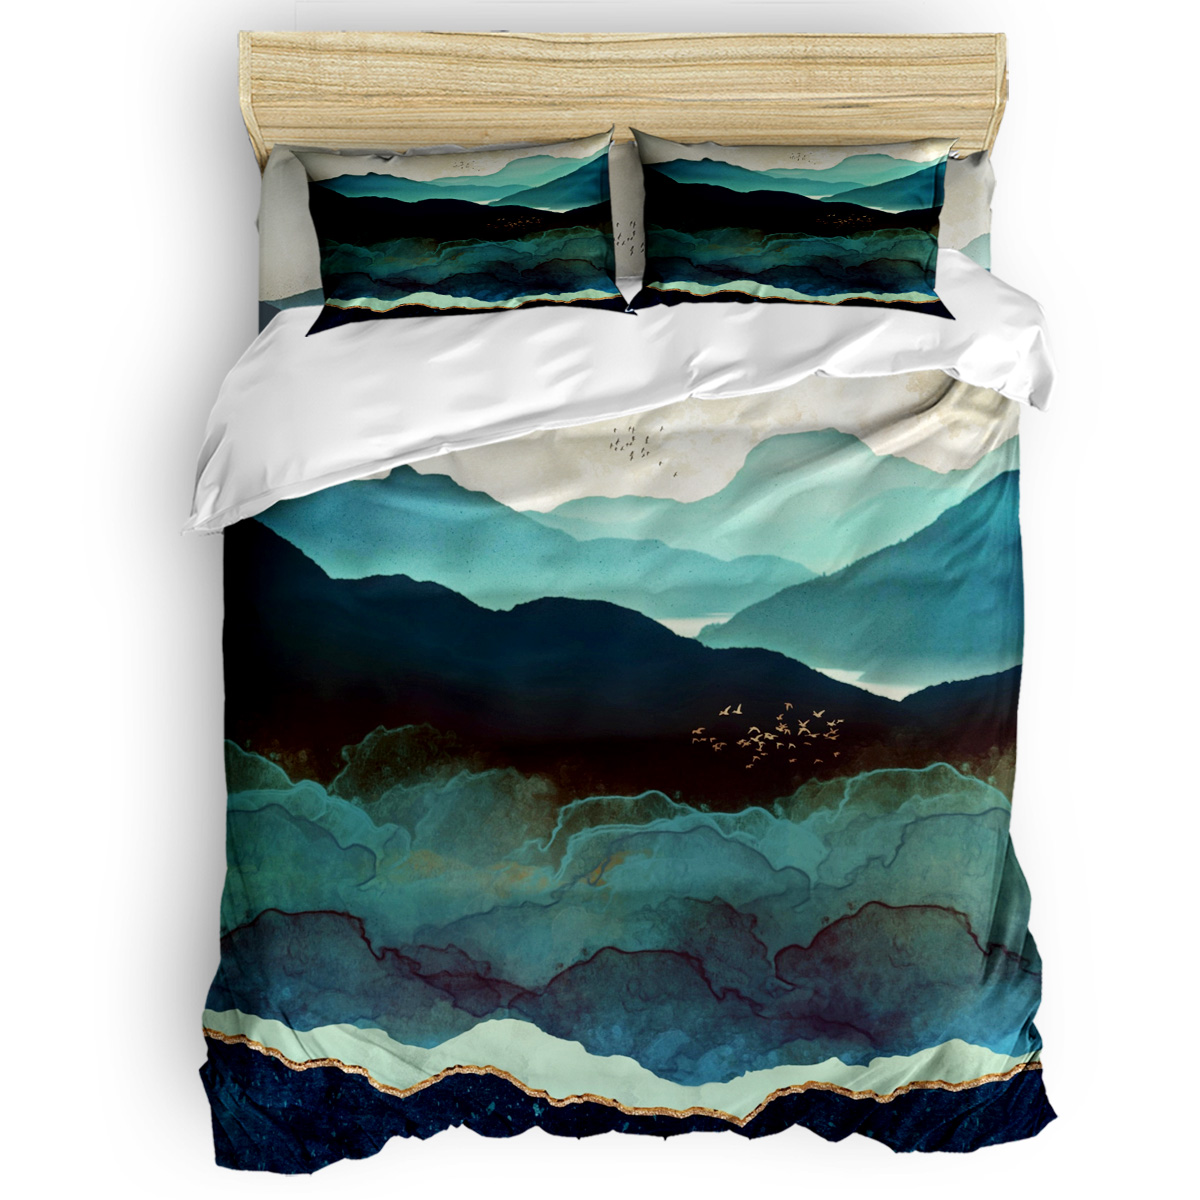 Indigo Mountains Duvet Cover Set Blue and Green Art Design Nature Collection of 3/4pcs Bedding Set Bed Sheet Pillowcases SetIndigo Mountains Duvet Cover Set Blue and Green Art Design Nature Collection of 3/4pcs Bedding Set Bed Sheet Pillowcases Set